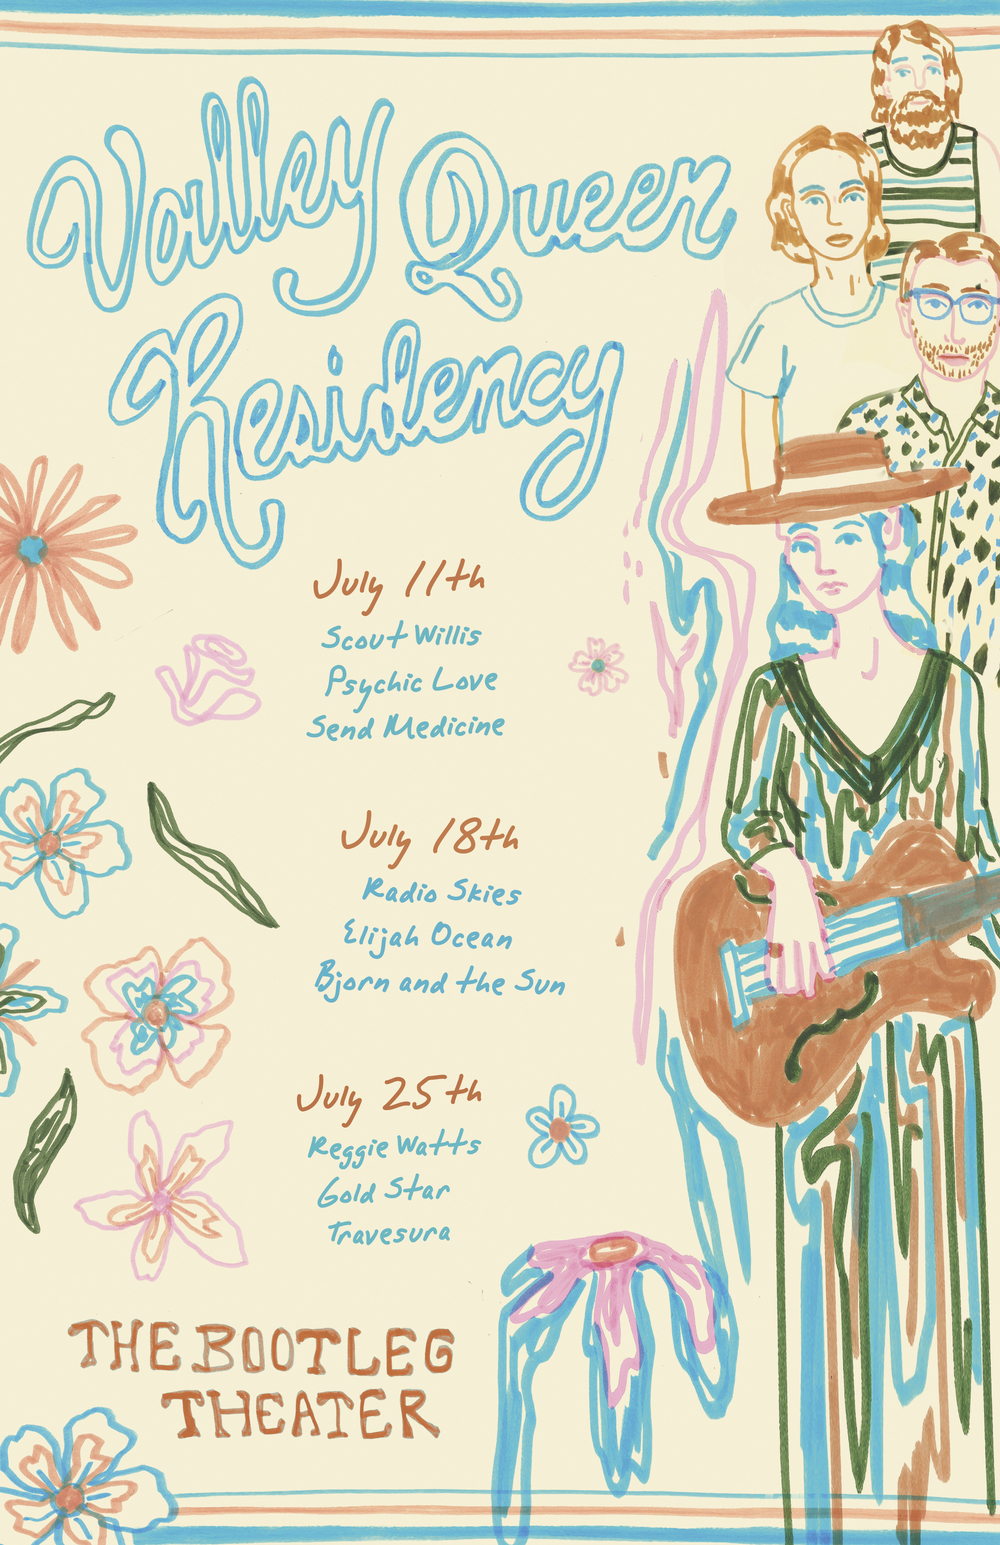 7/01/16 Catch the band headlining their first residency ever at The Bootleg Theater in Los Angeles the last three Mondays of July. Lots of great artists getting together for this one! FREE